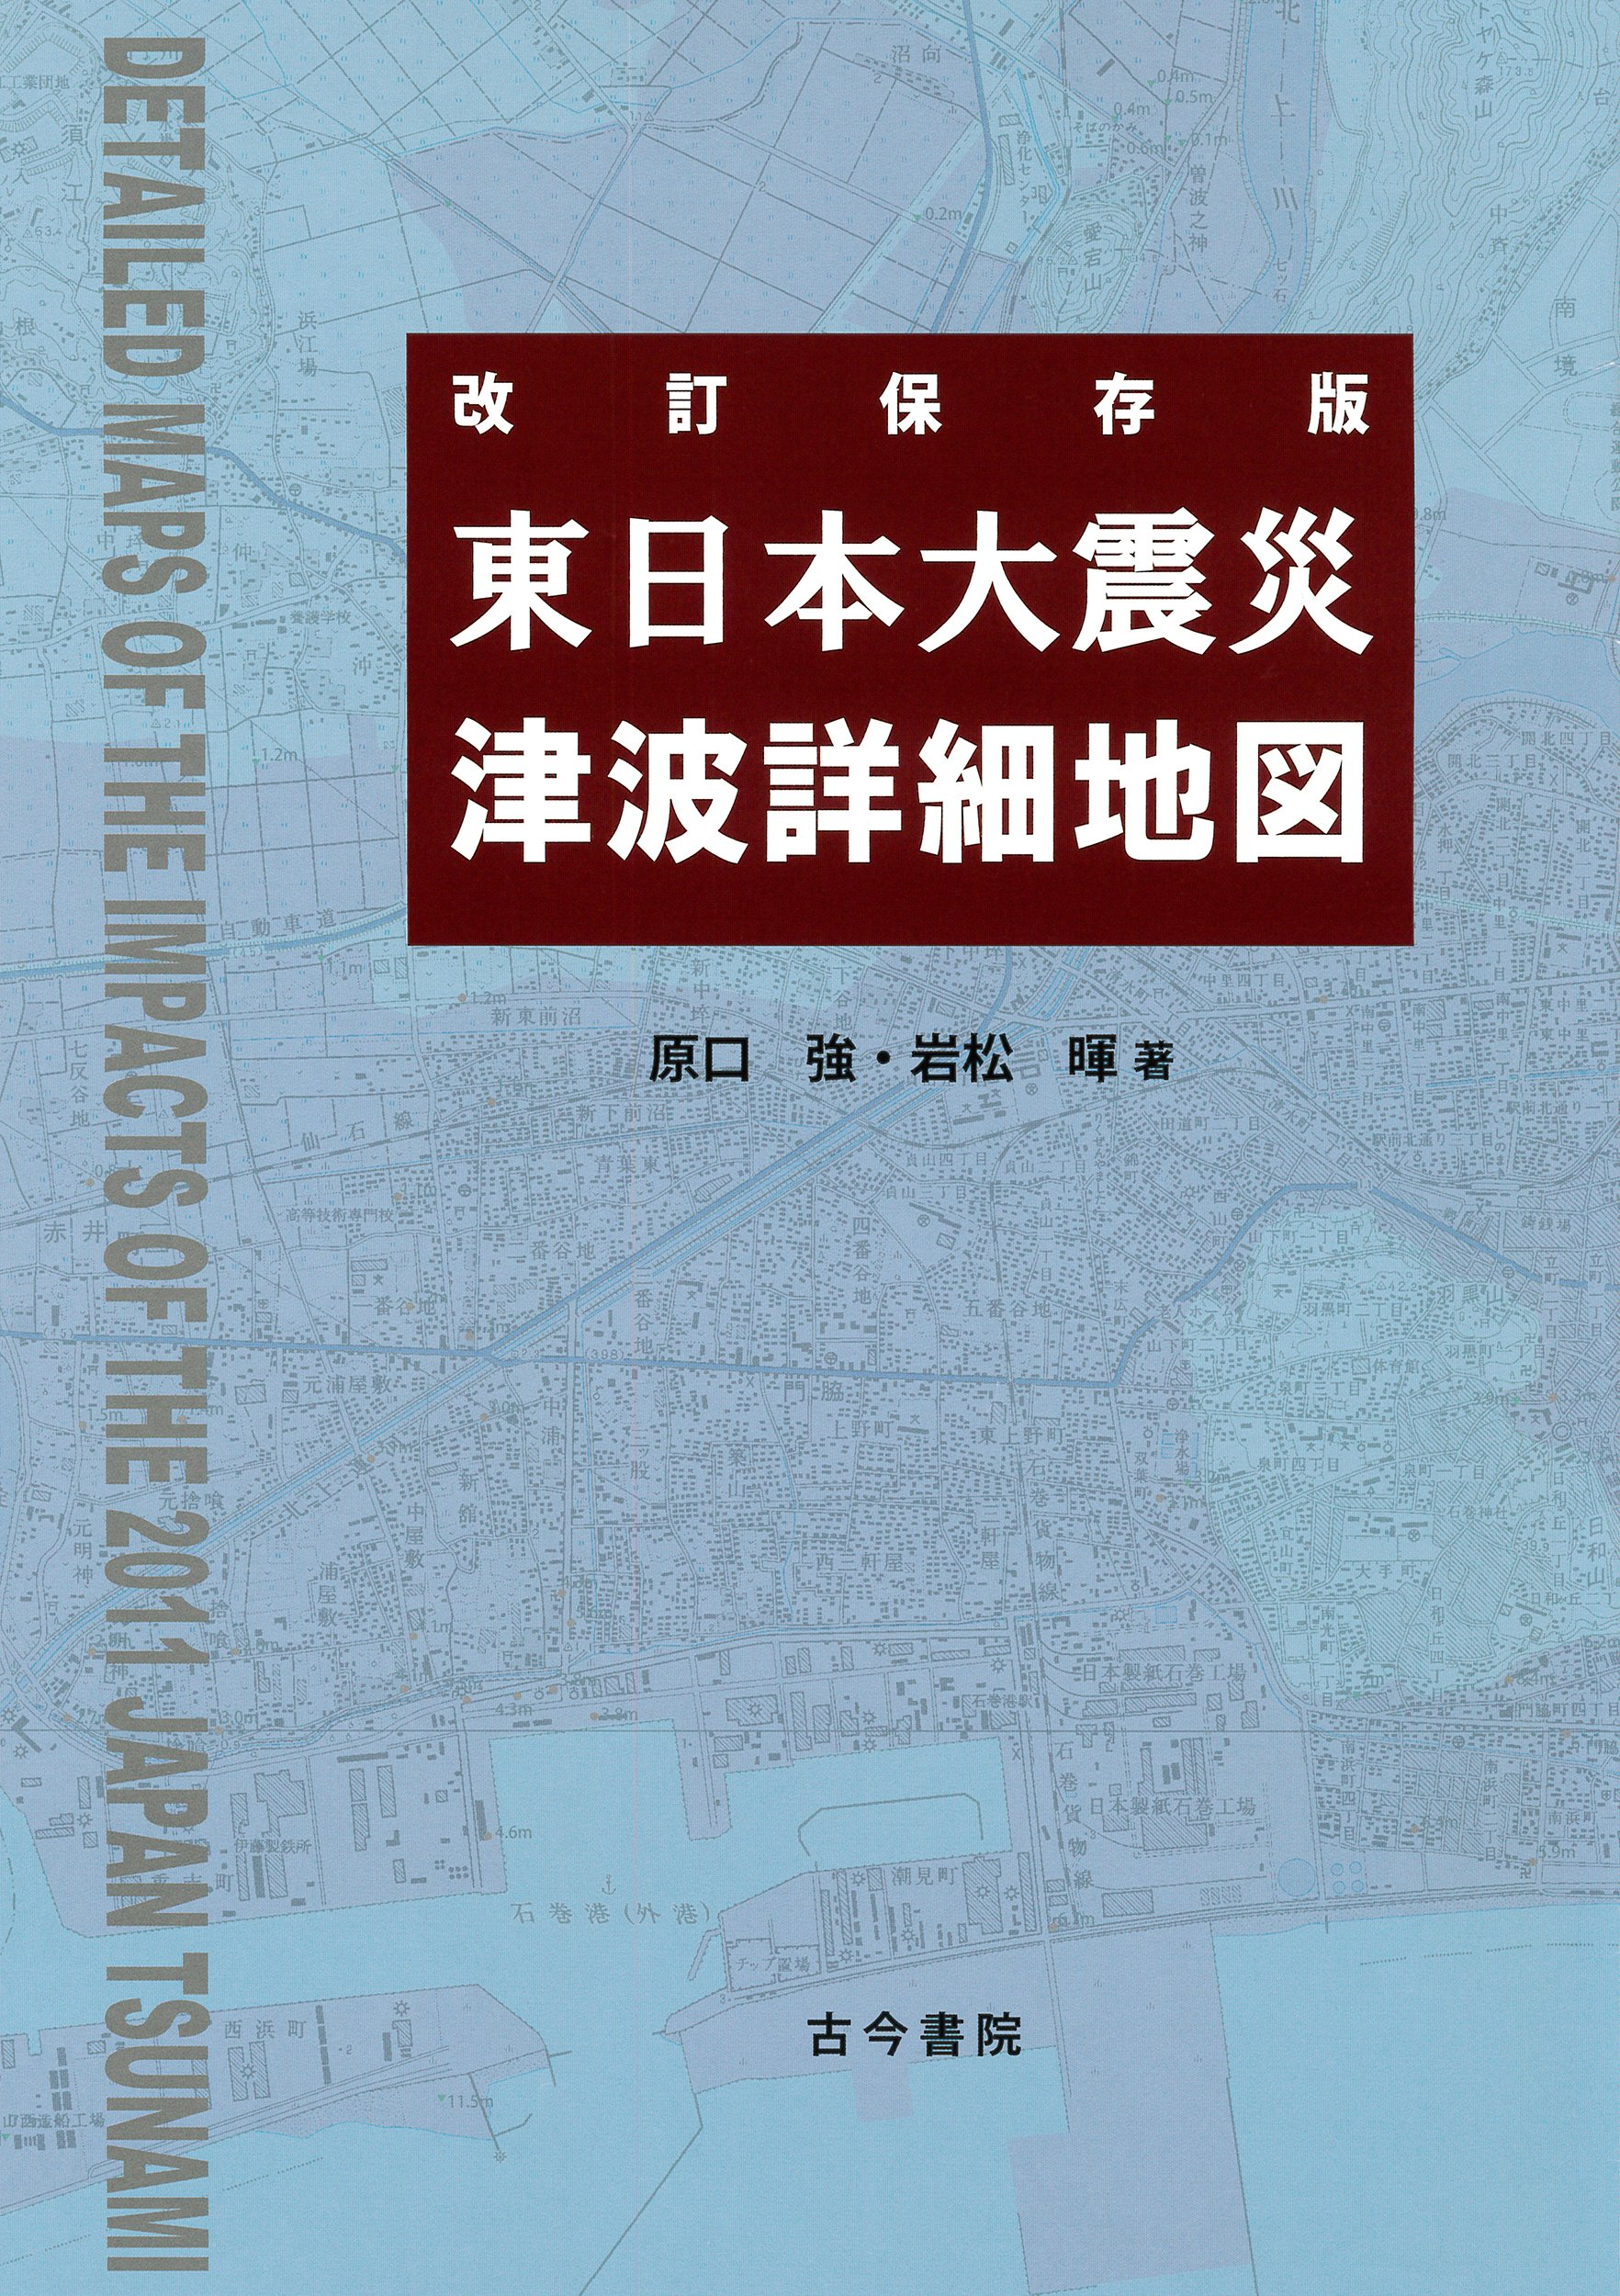 Read Online Higashi Nihon Daishinsai tsunami shōsai chizu = Detailed maps of the impacts of the 2011 Japan tsunami pdf epub